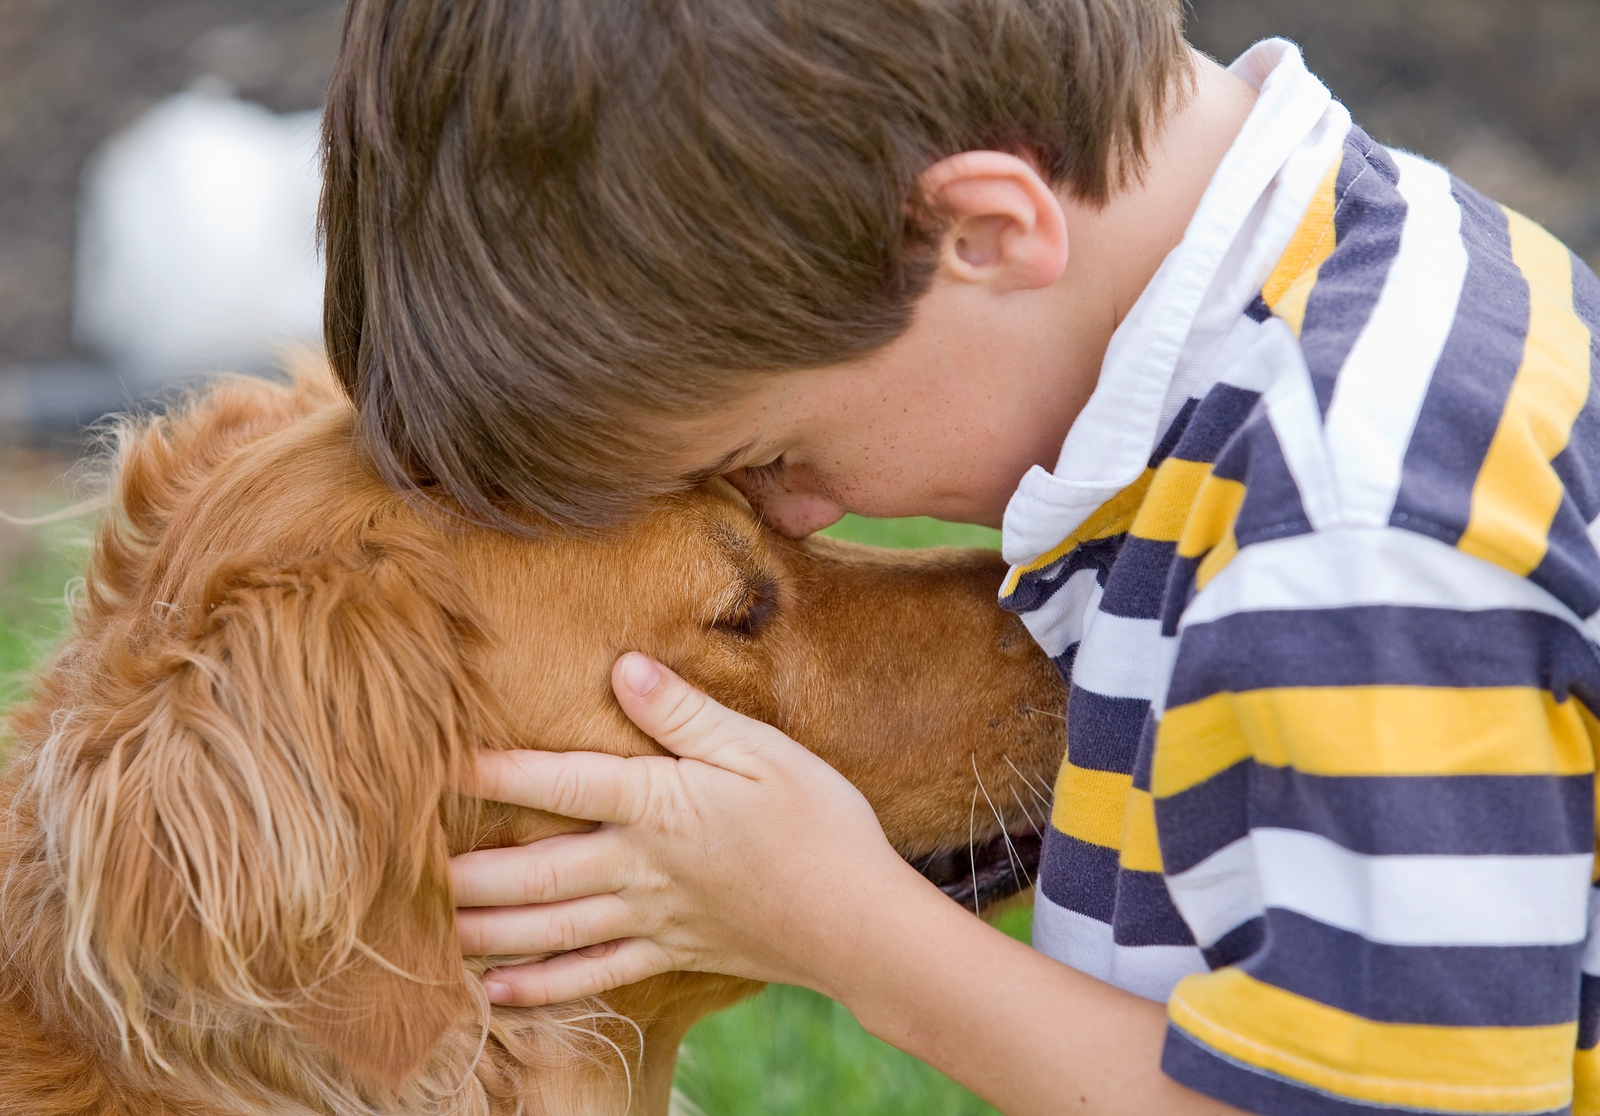 bigstock-Little-Boy-And-Dog-4895050.jpg